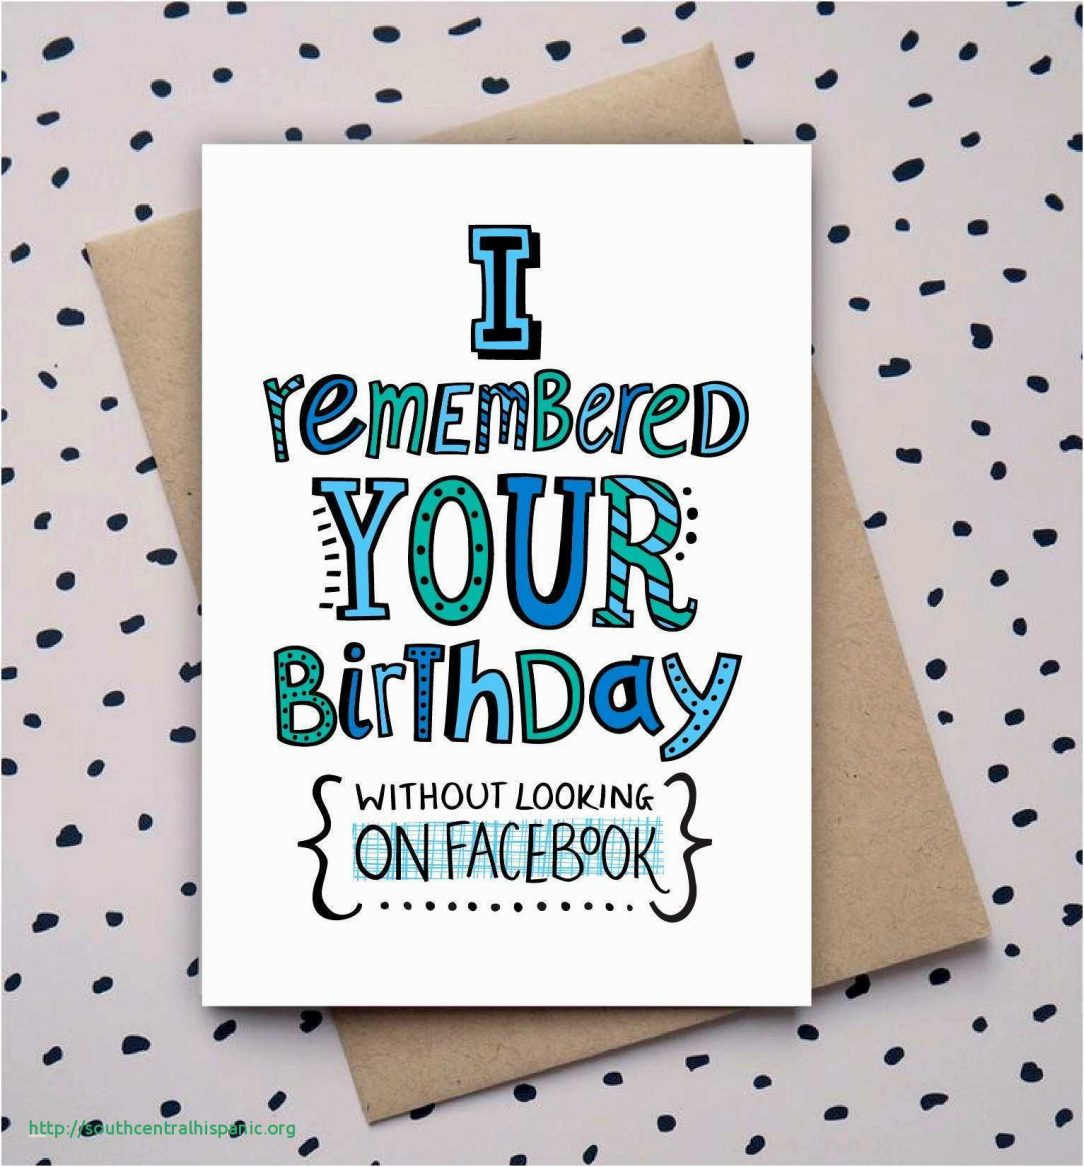 Birthday Cards Ideas For Dad Cute Birthday Card Ideas For Dad Dads Cards Handmade Wording Text A